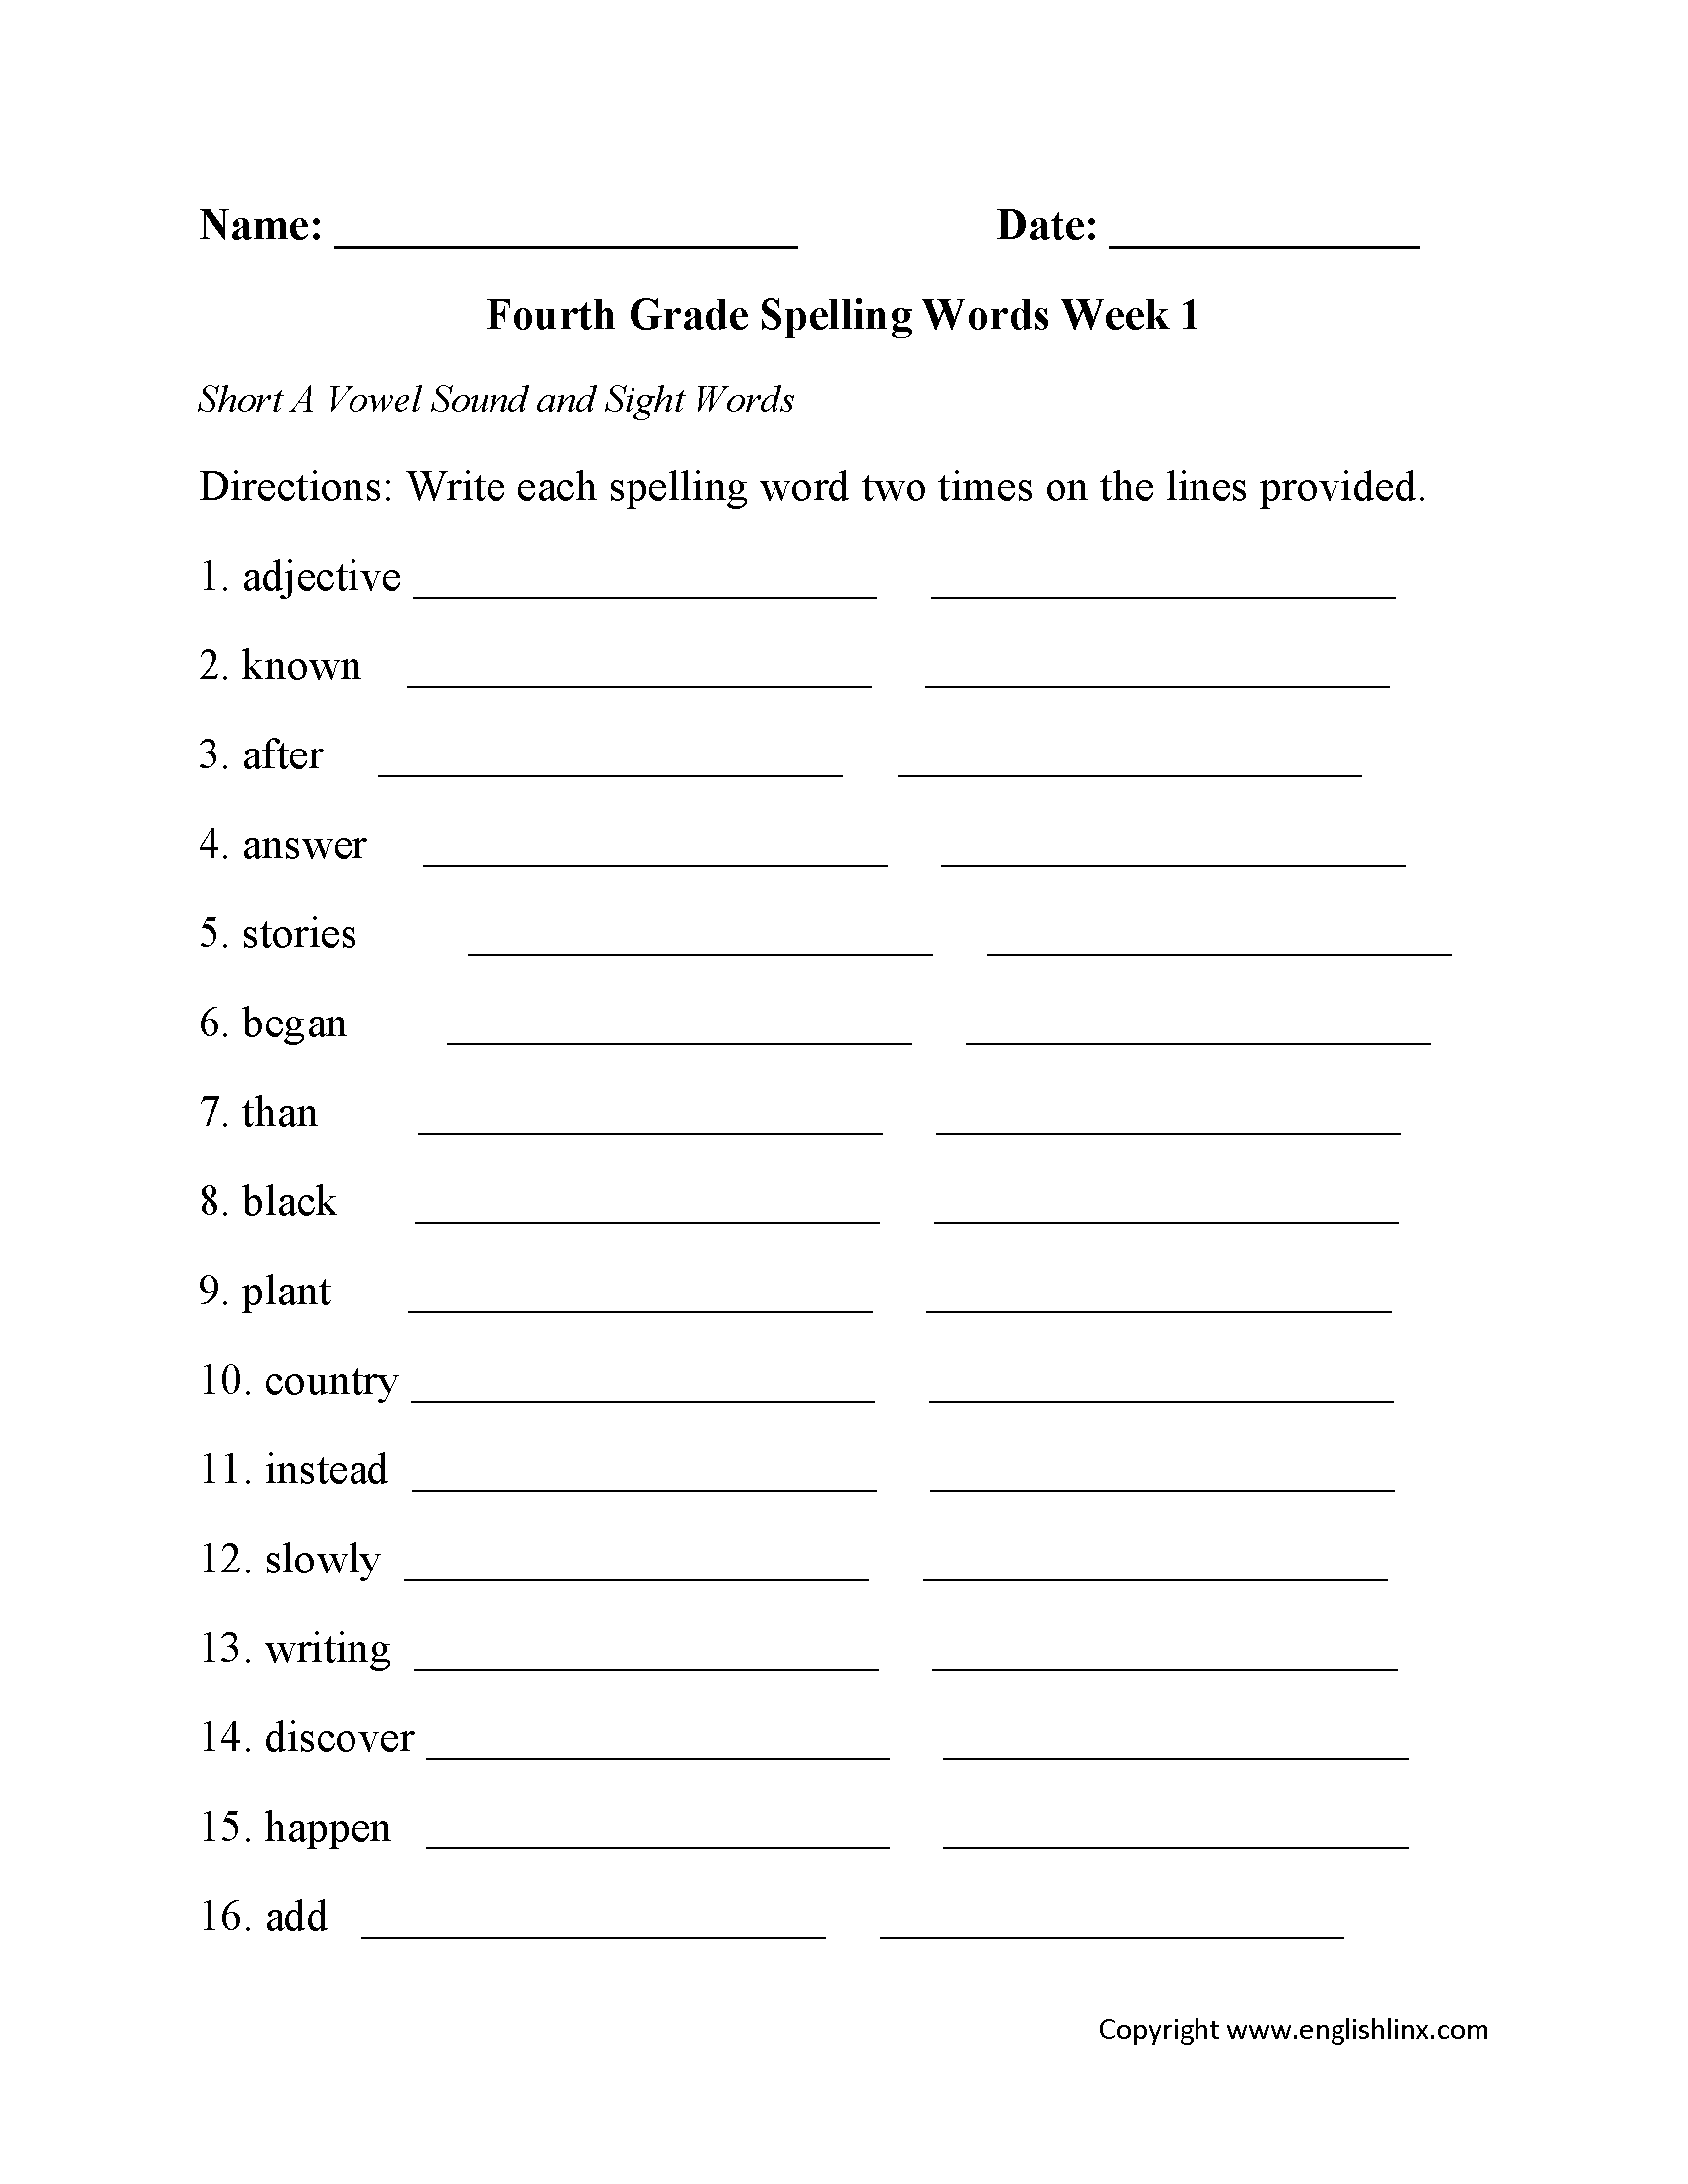 Worksheet Fourth Grade Spelling Worksheets spelling worksheets fourth grade worksheets